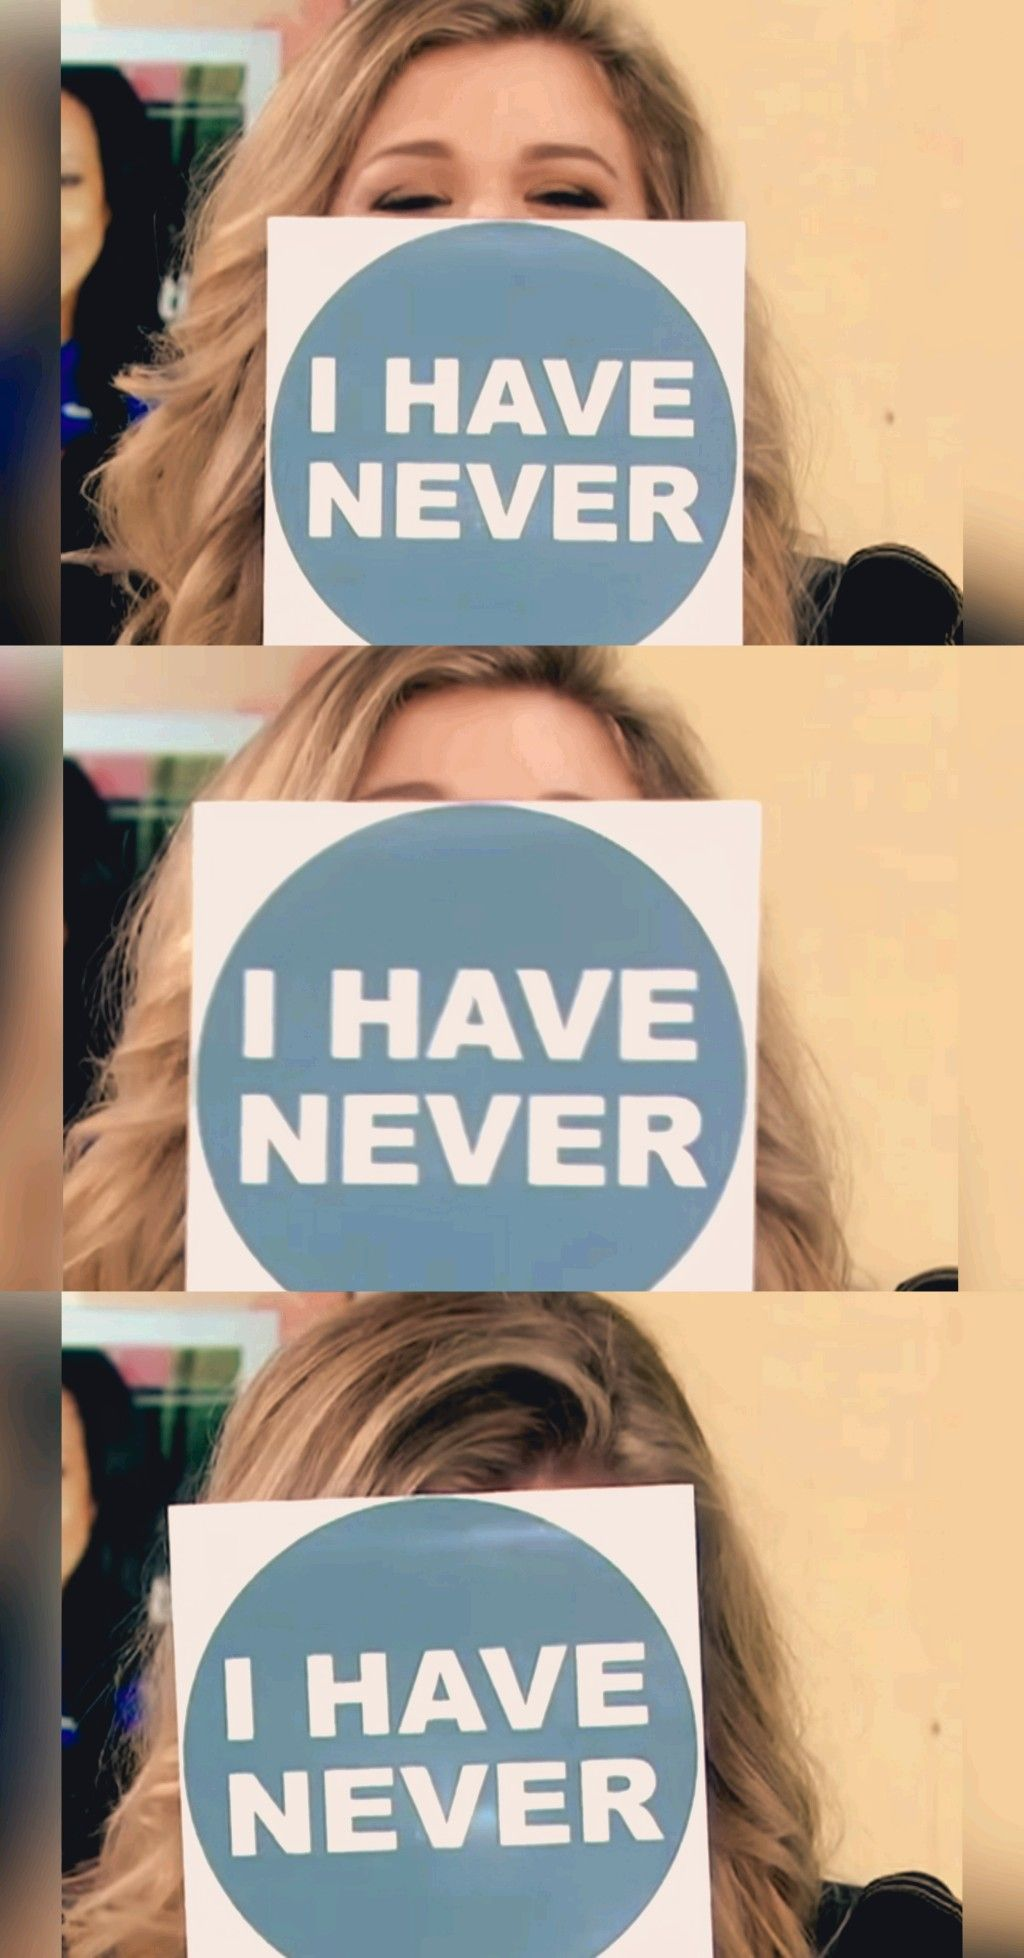 Kelly clarkson never have i ever today show iconic